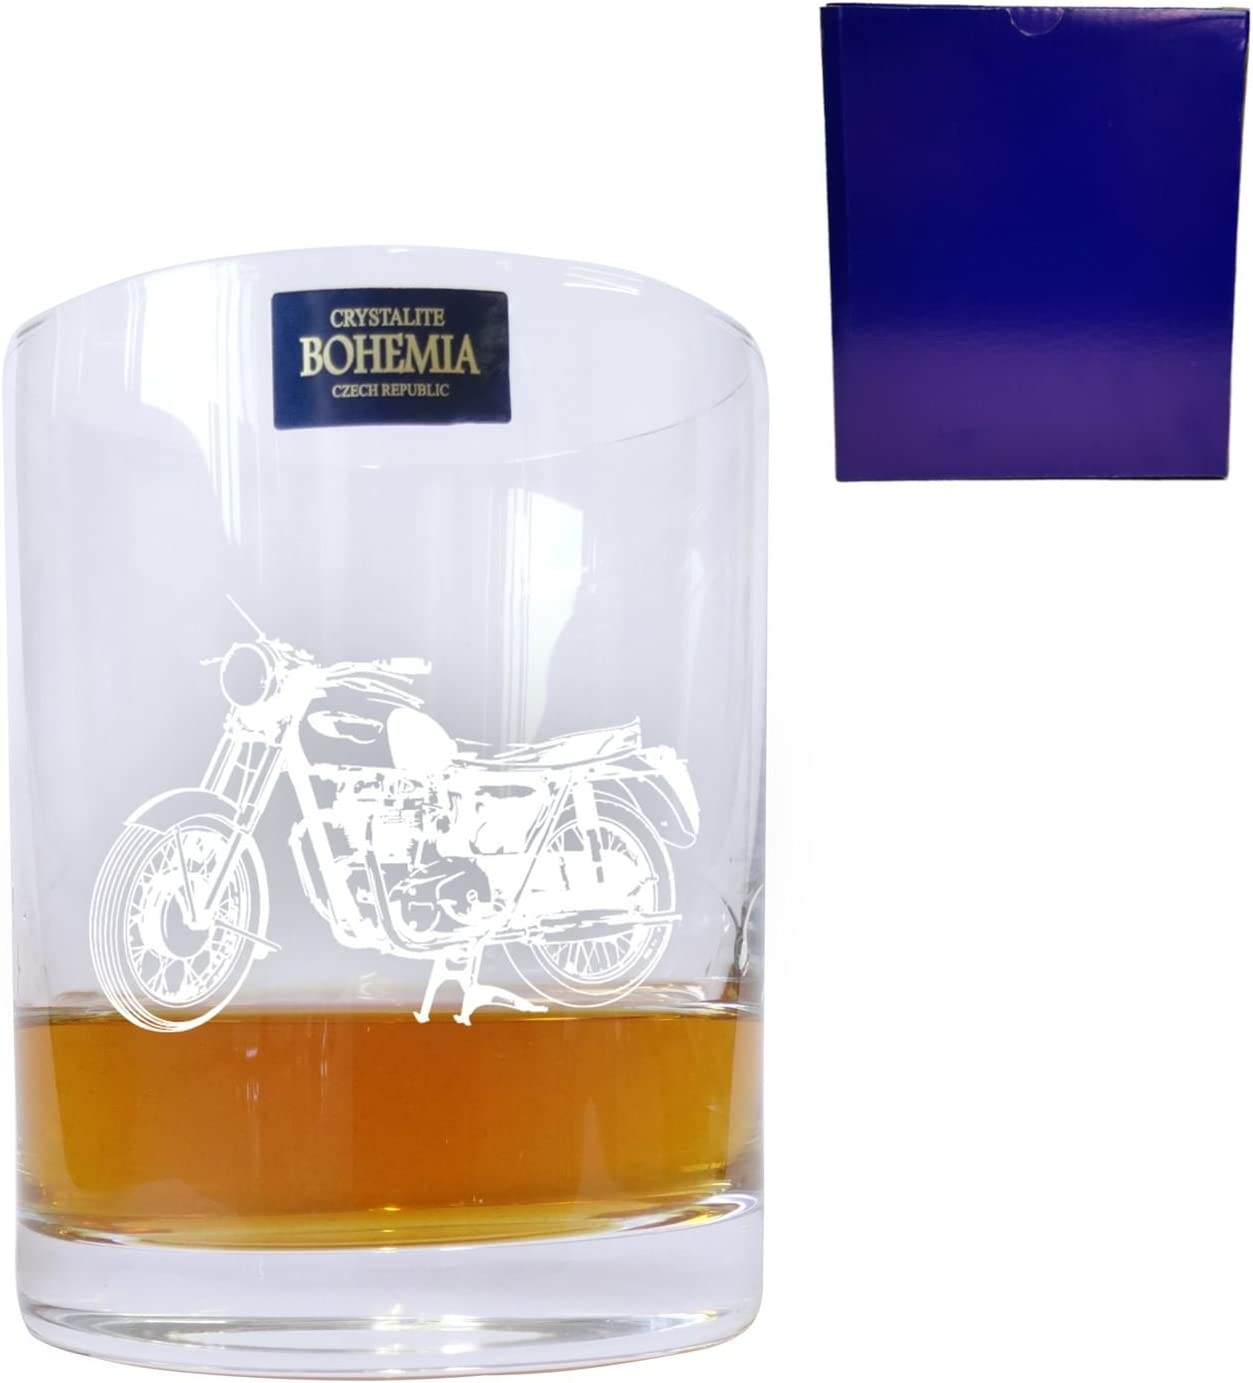 Bohemia Crystal Whisky Glass With Motorbike Design with Engraving